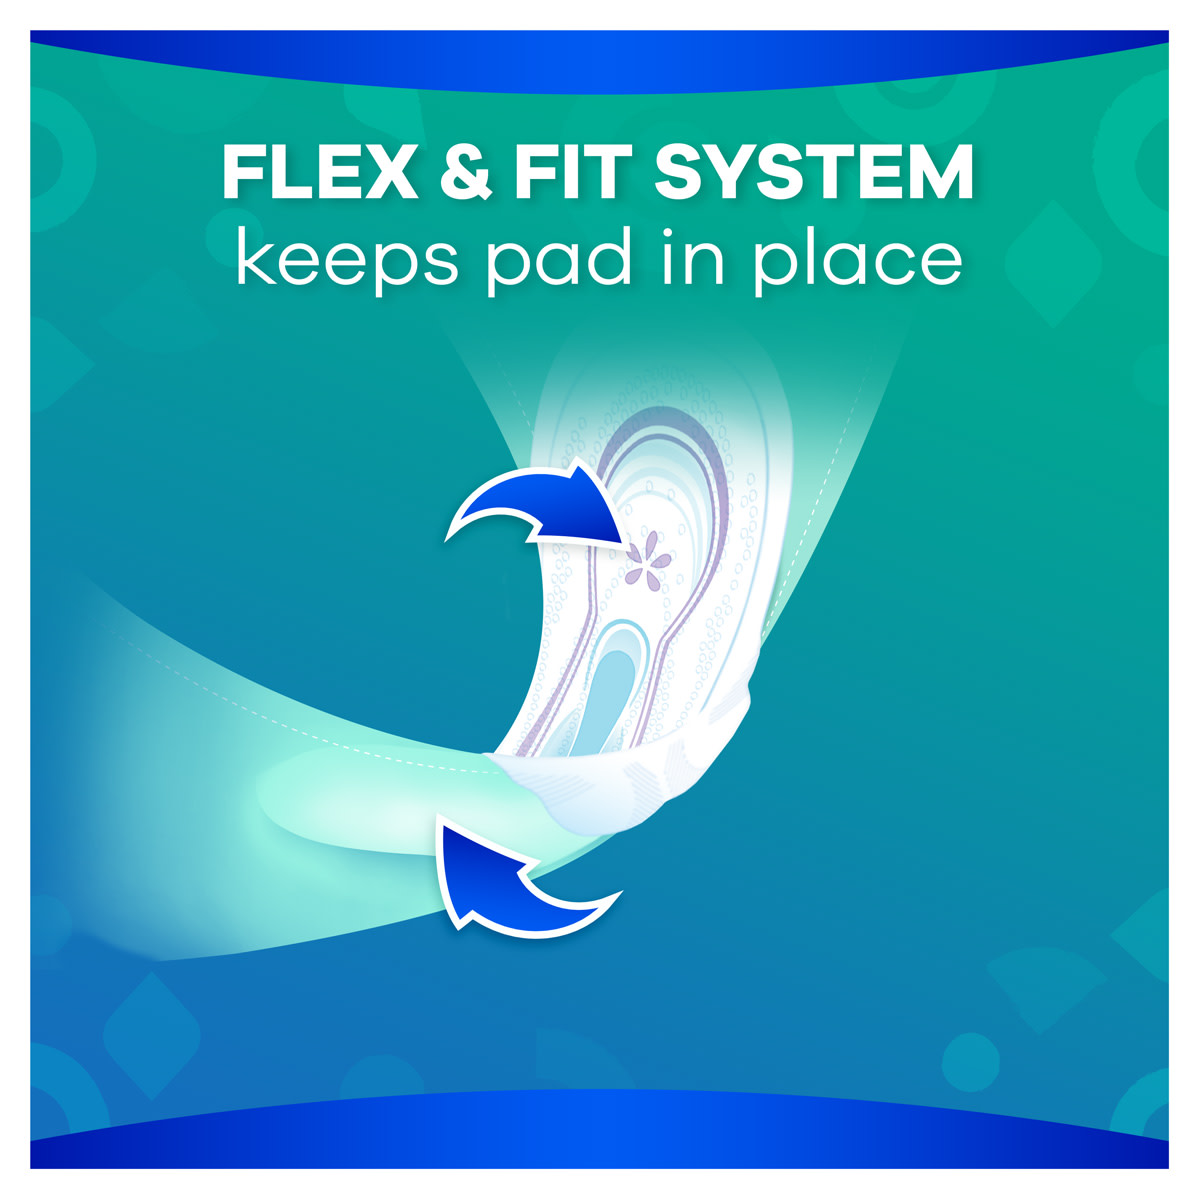 Flex & Fit system keeps pad in place